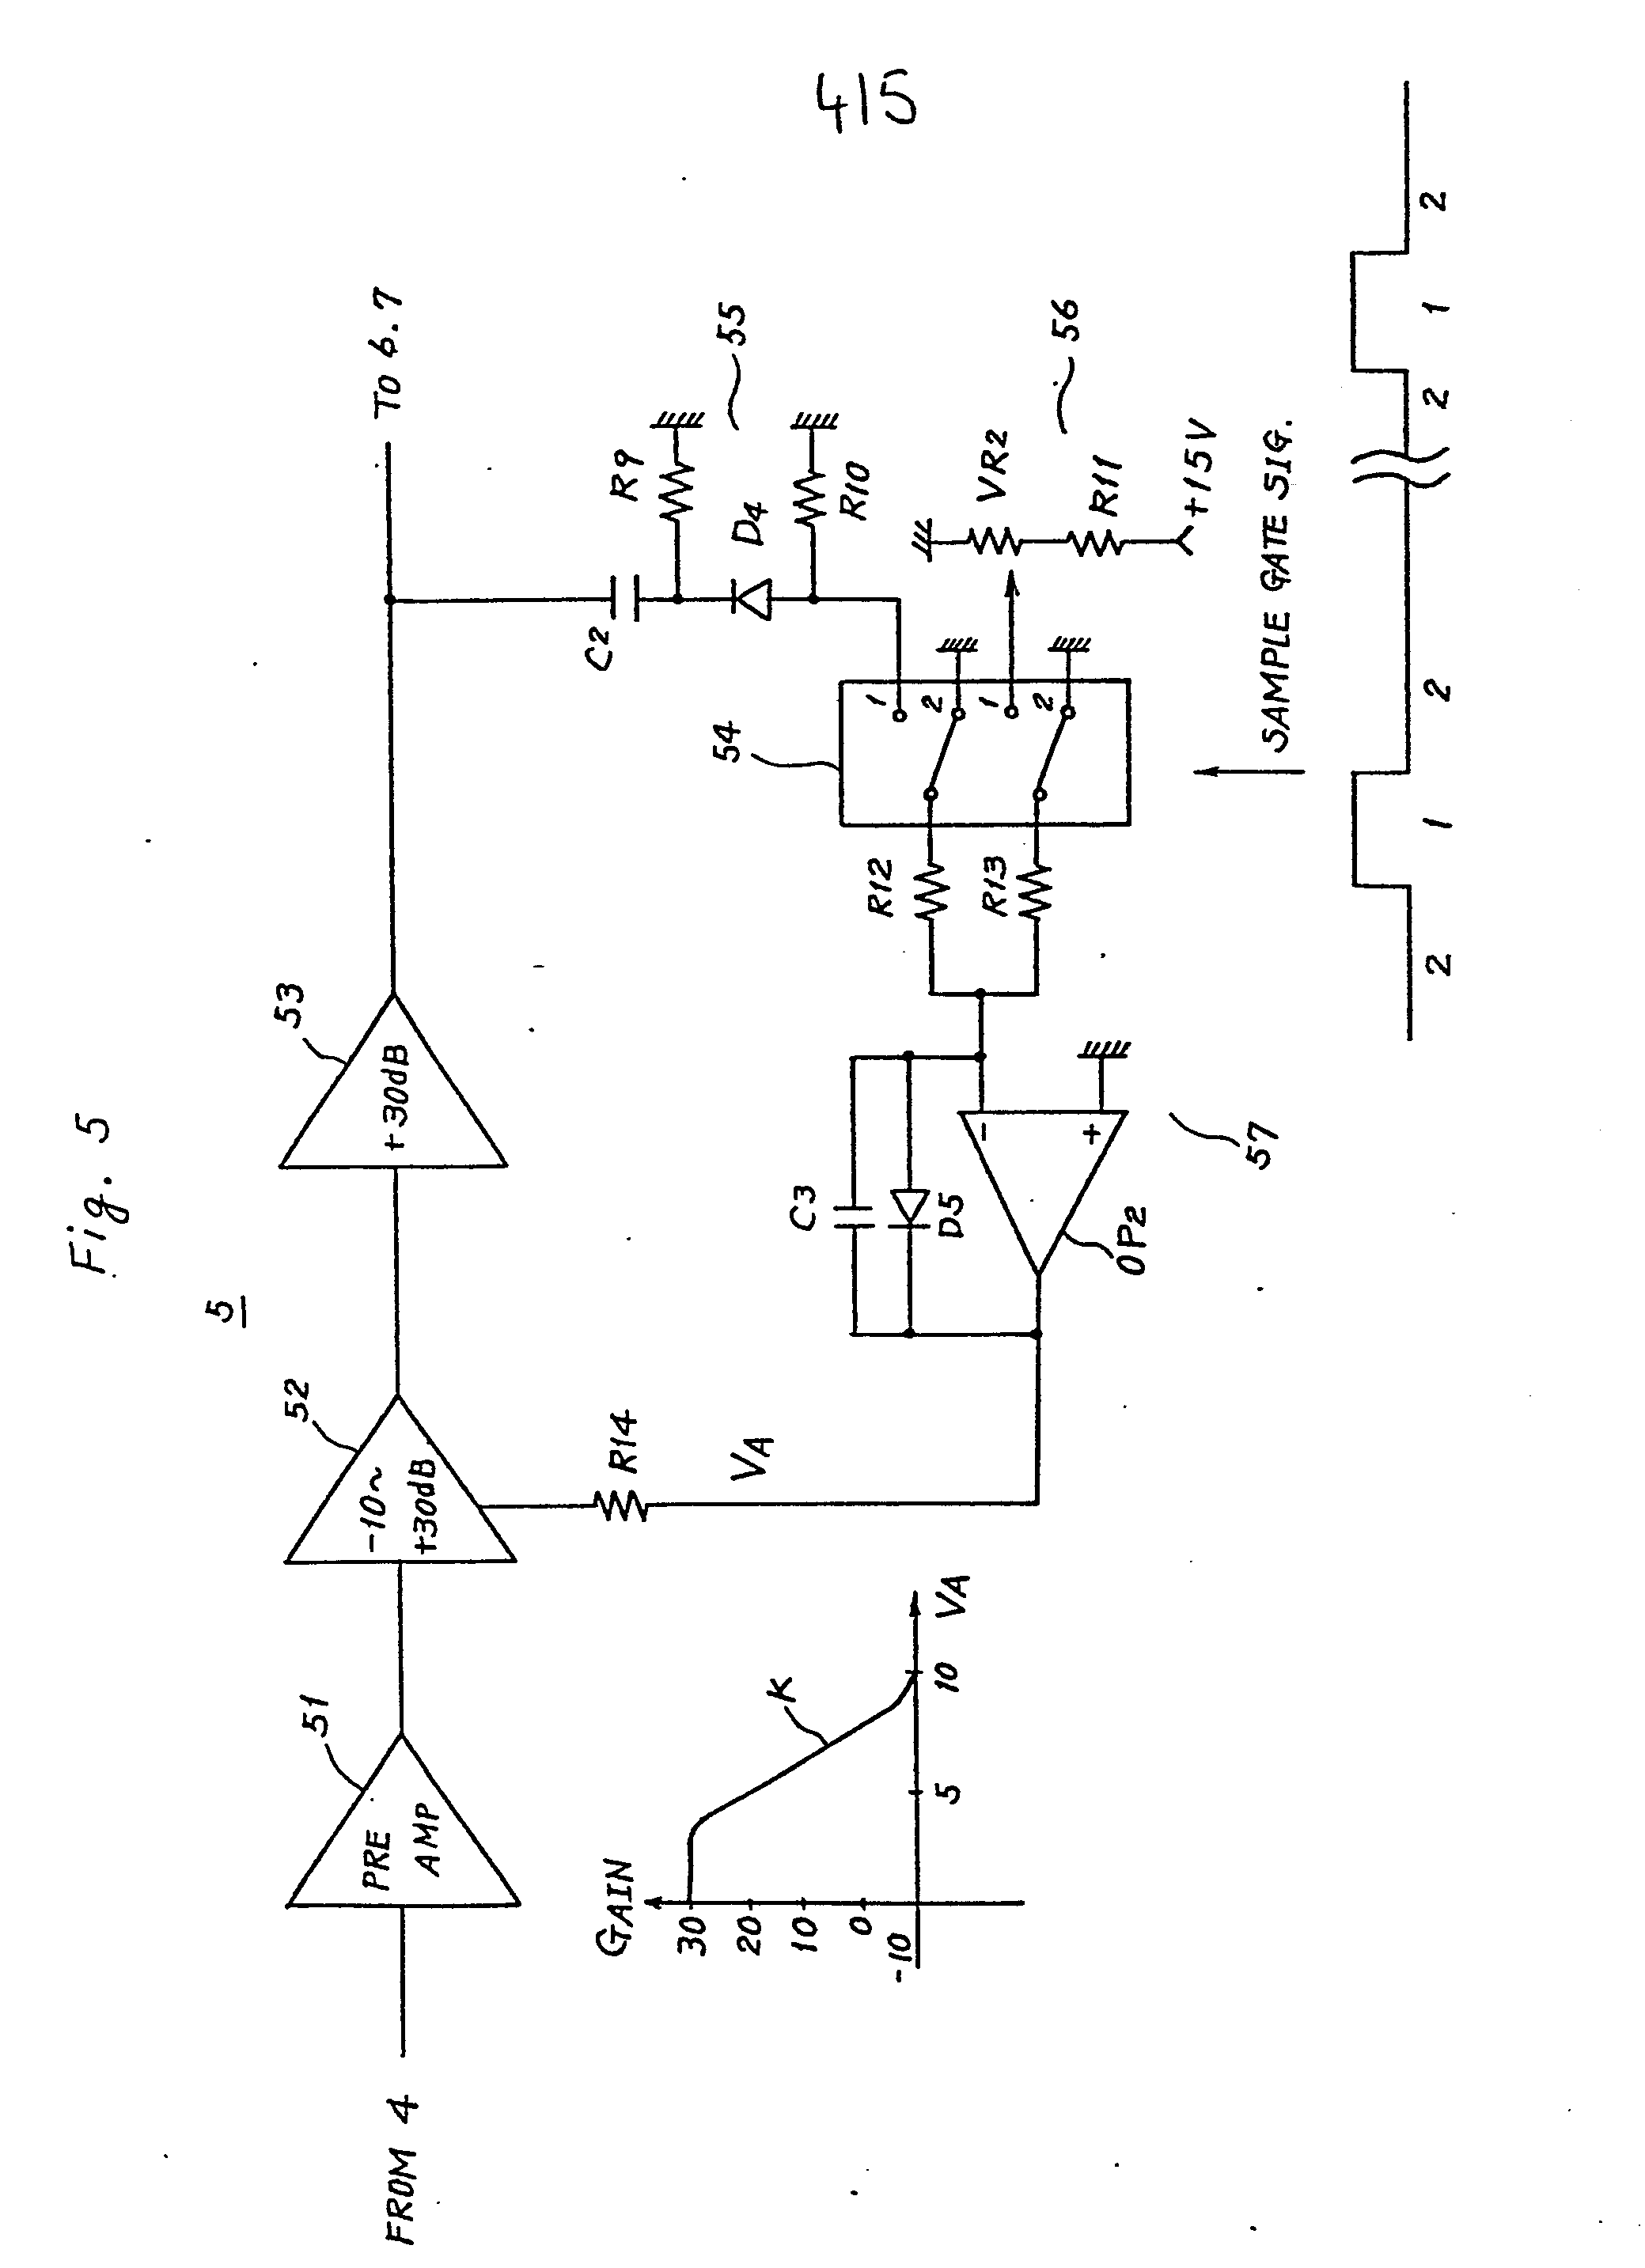 Blood Flow Meter Circuit Diagram Trusted Wiring Diagrams Patent Ep0102733a1 Ultrasonic Pulse Doppler Rpm